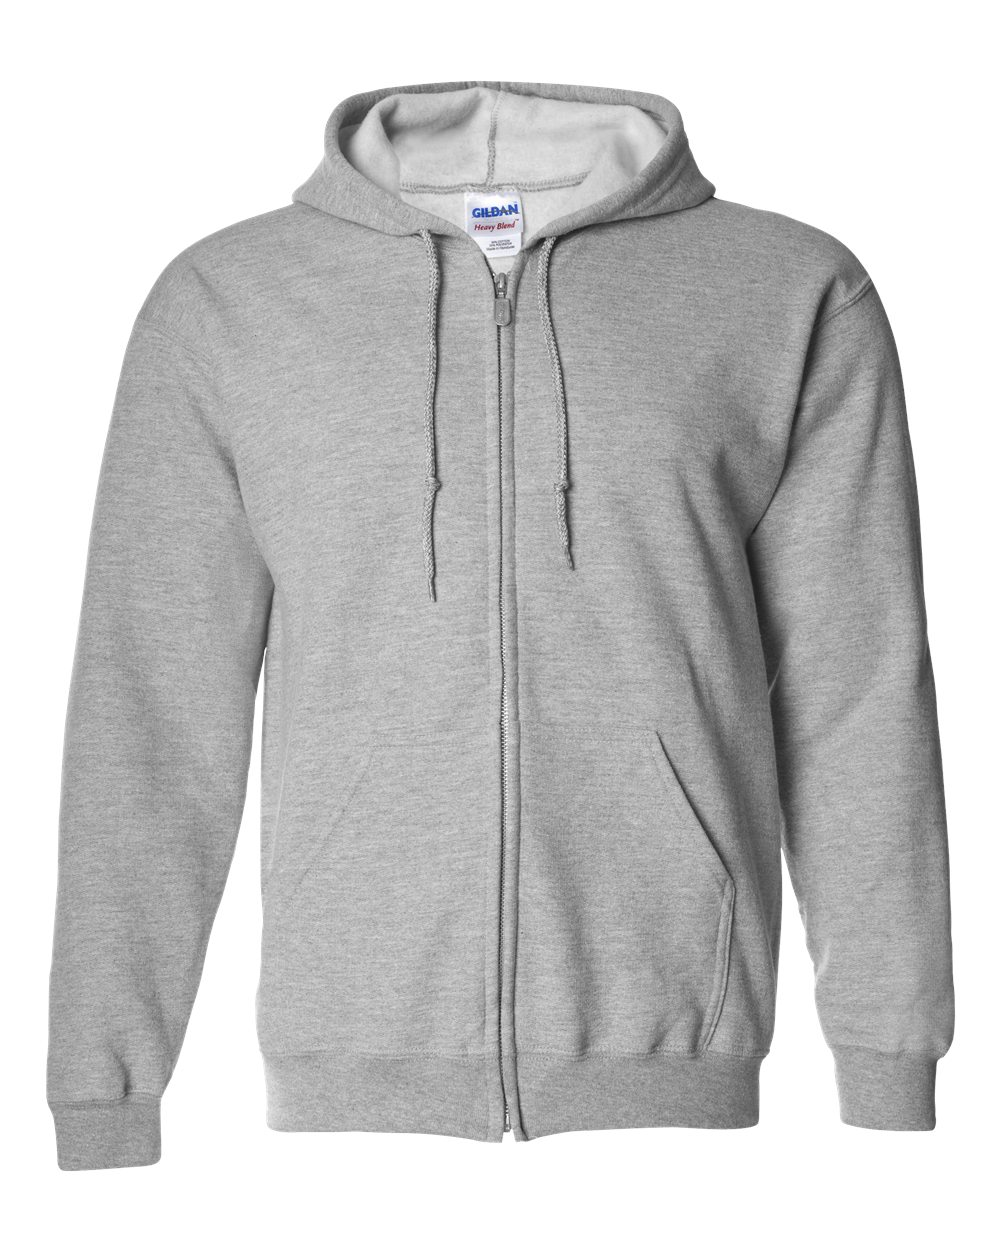 gildan 18600 heavy blend full zip hooded sweatshirt needen usa